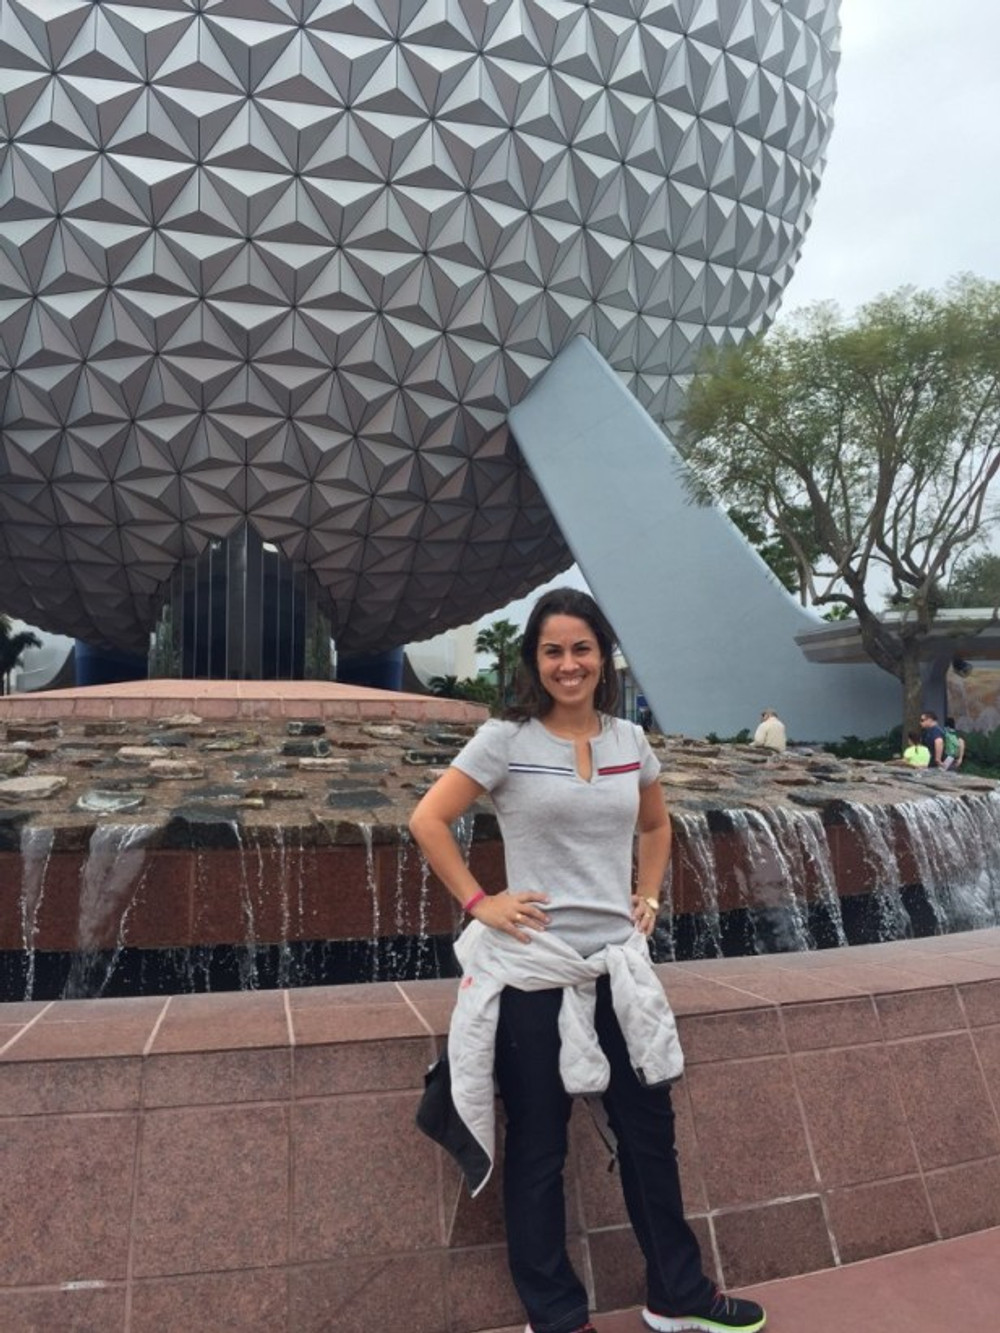 Epcot-center parques de orlando